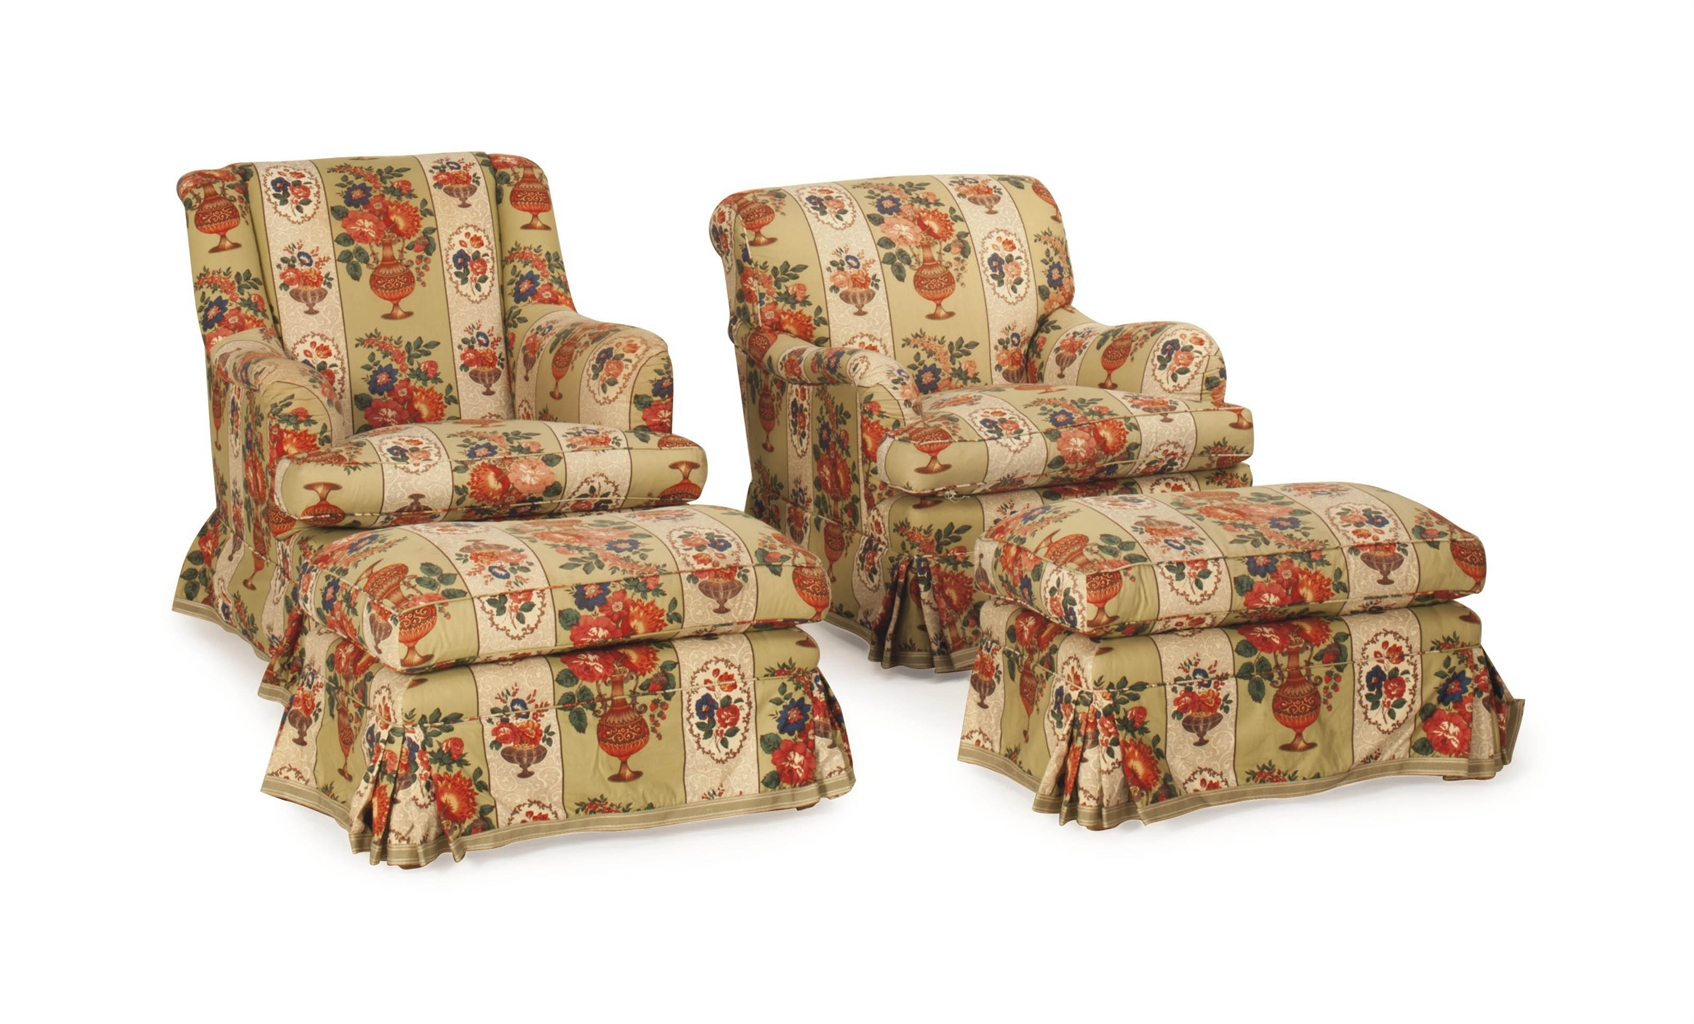 Two Pairs Of Floral Chintz Upholstered Club Chairs And A